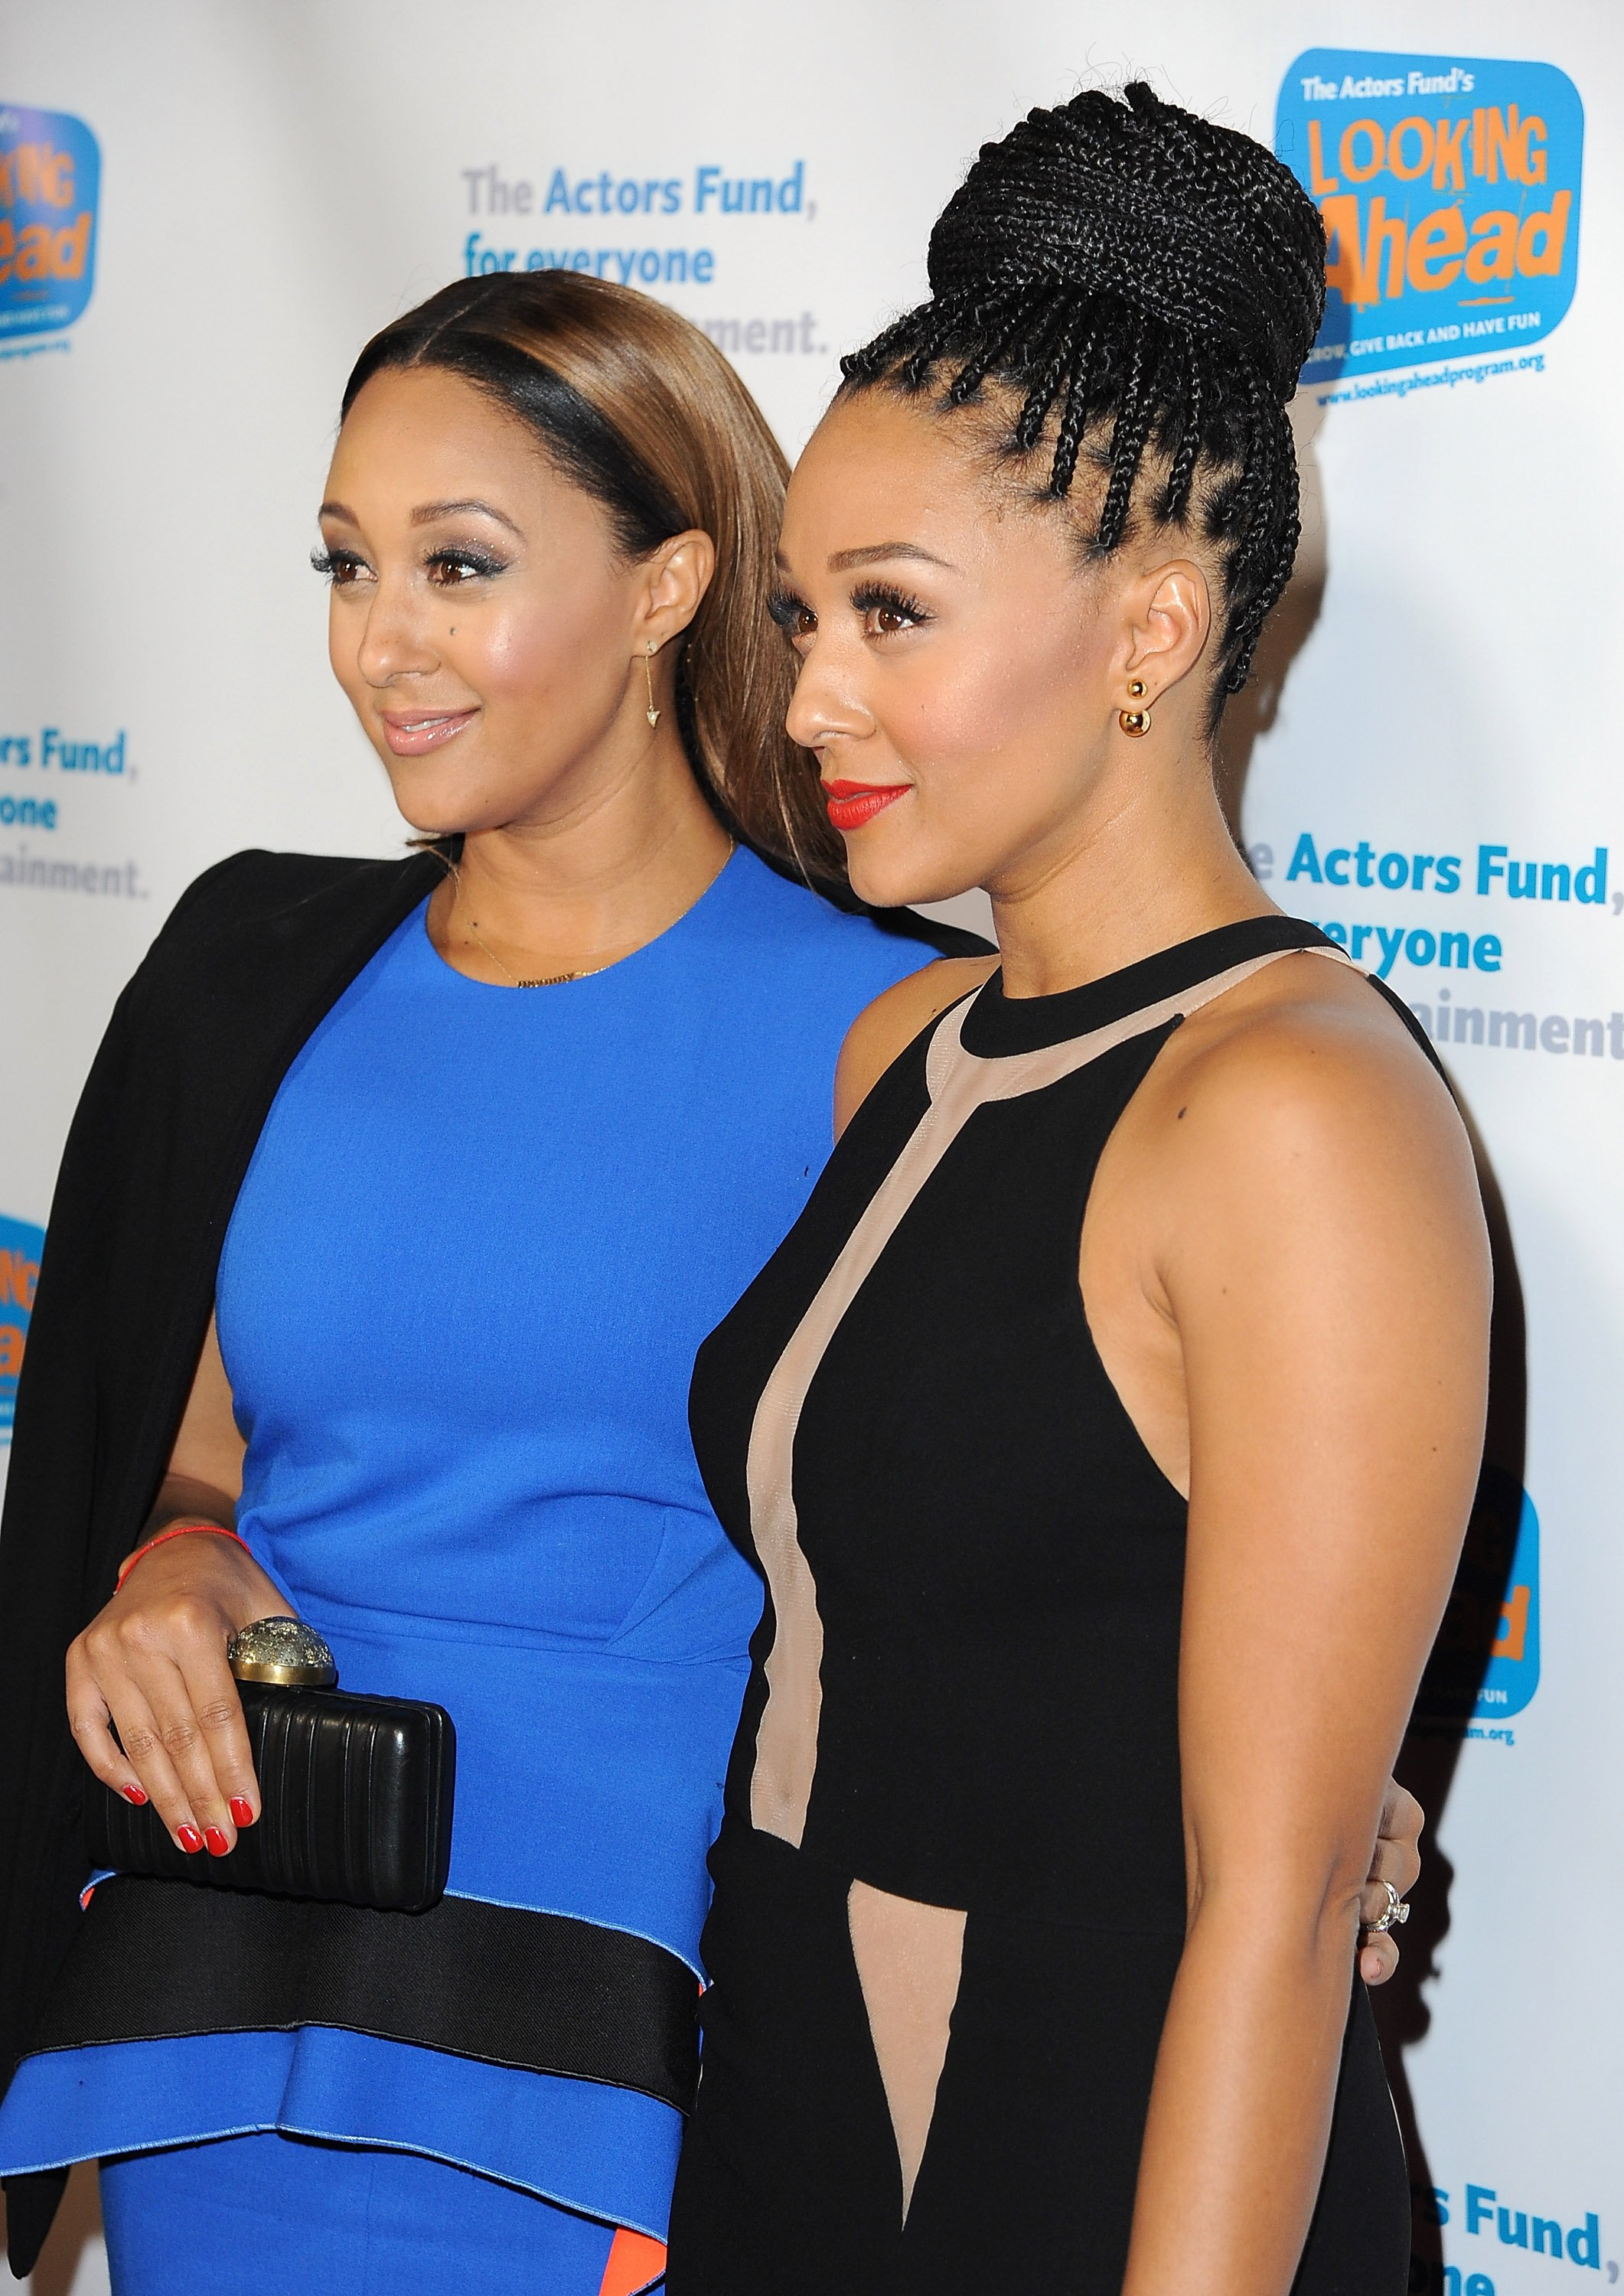 Tamera Mowry-Housley (L) & Tia Mowry-Hardrict at The Actor's Fund 2014 in Hollywood on Dec. 4, 2014.   Photo: Getty Images